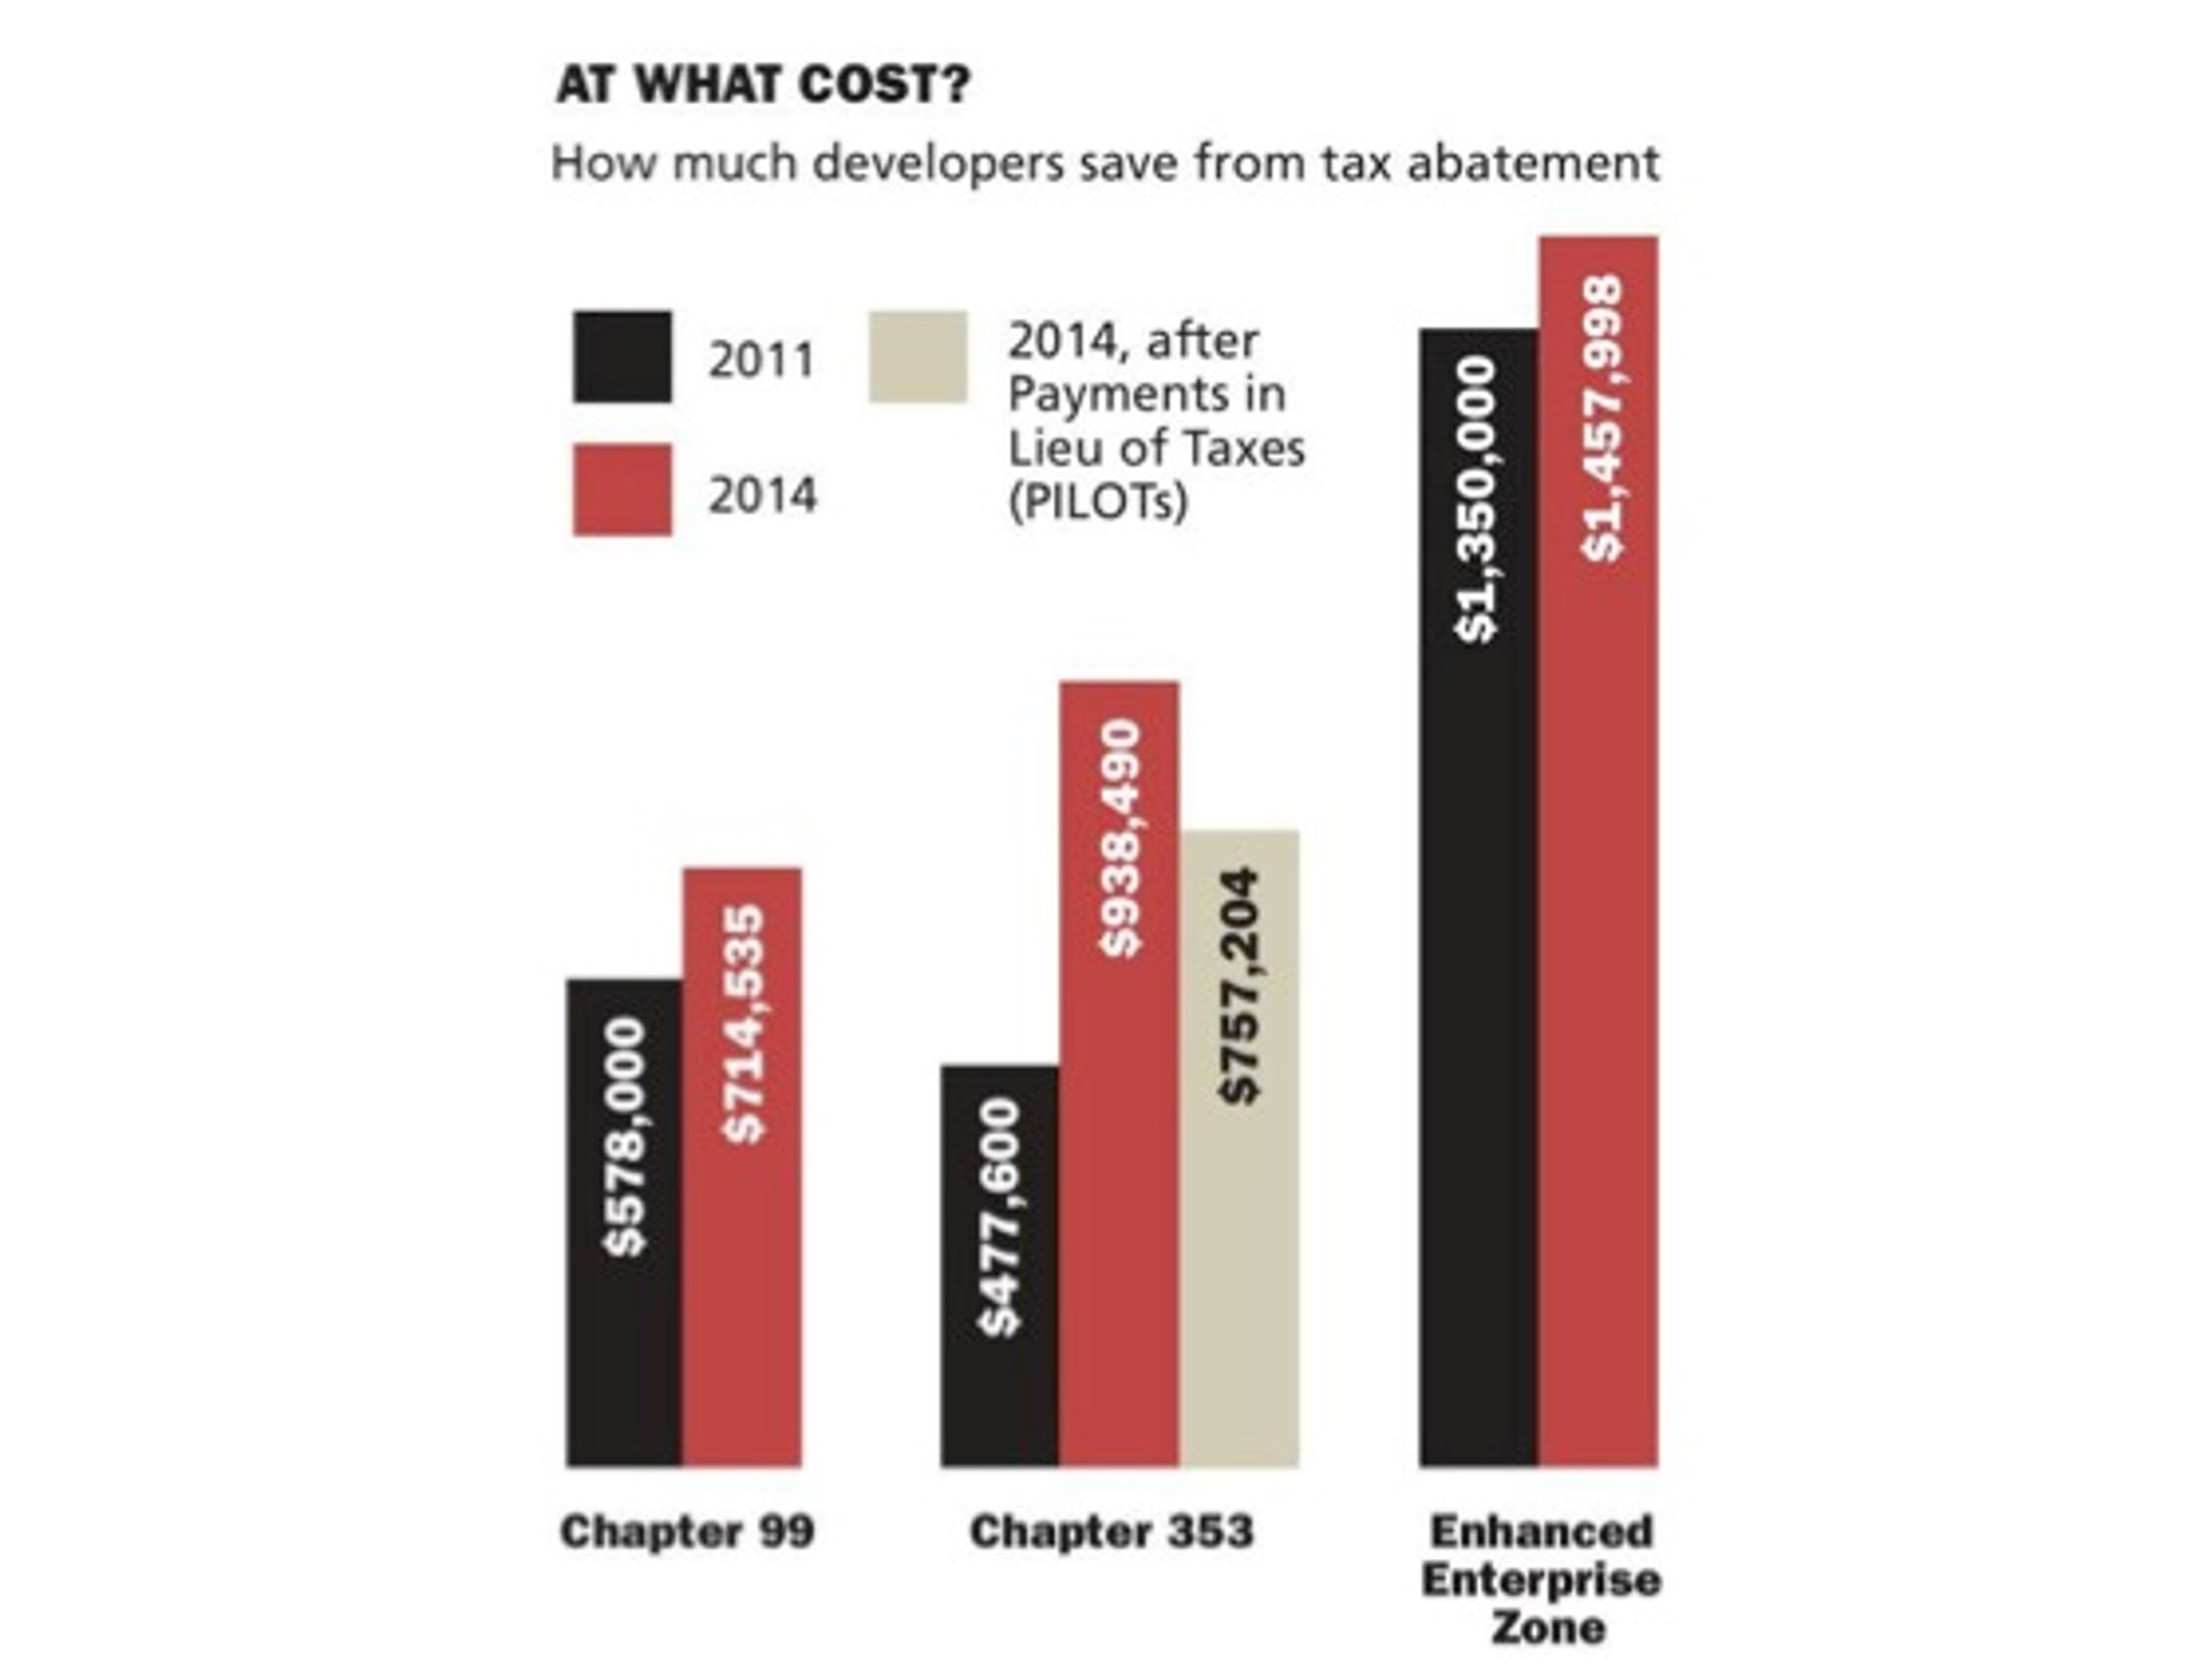 The value of the tax abatements the city has granted